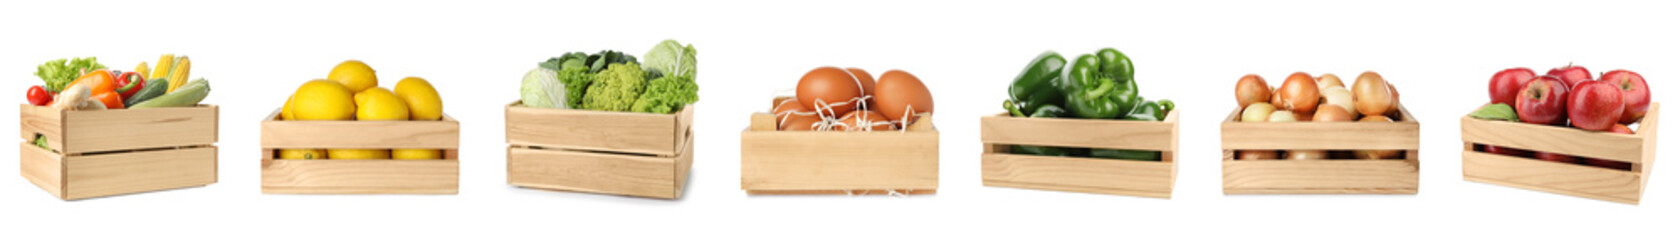 Fotorolgordijn Verse groenten Set of wooden crates with fruits, vegetables and eggs on white background